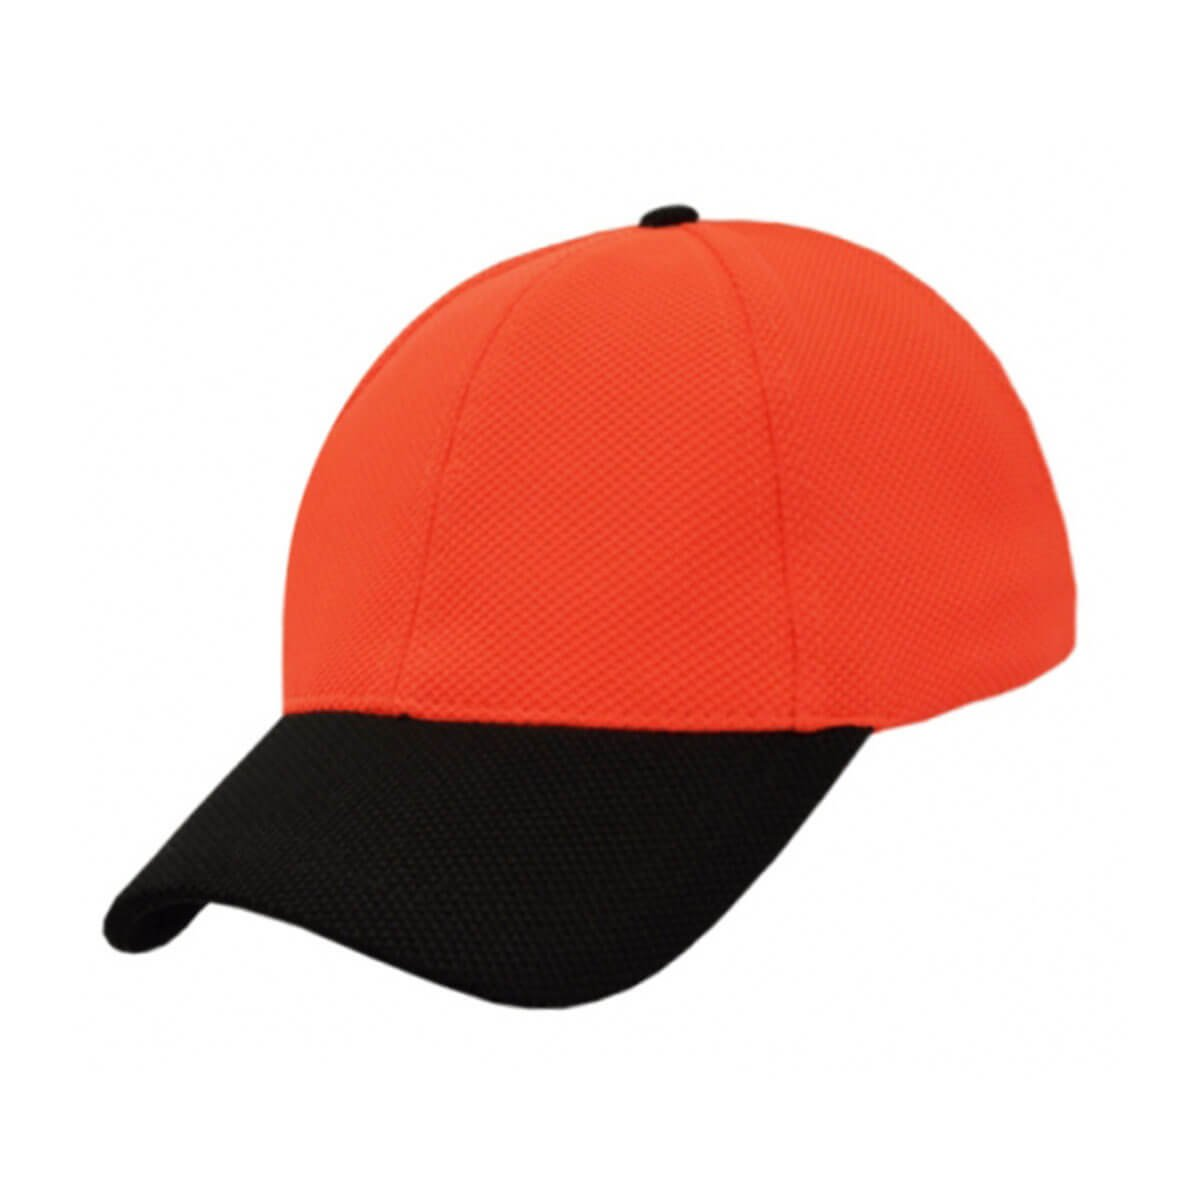 PQ Mesh Plain Sandwich Design Cap-Fluro Orange / Black